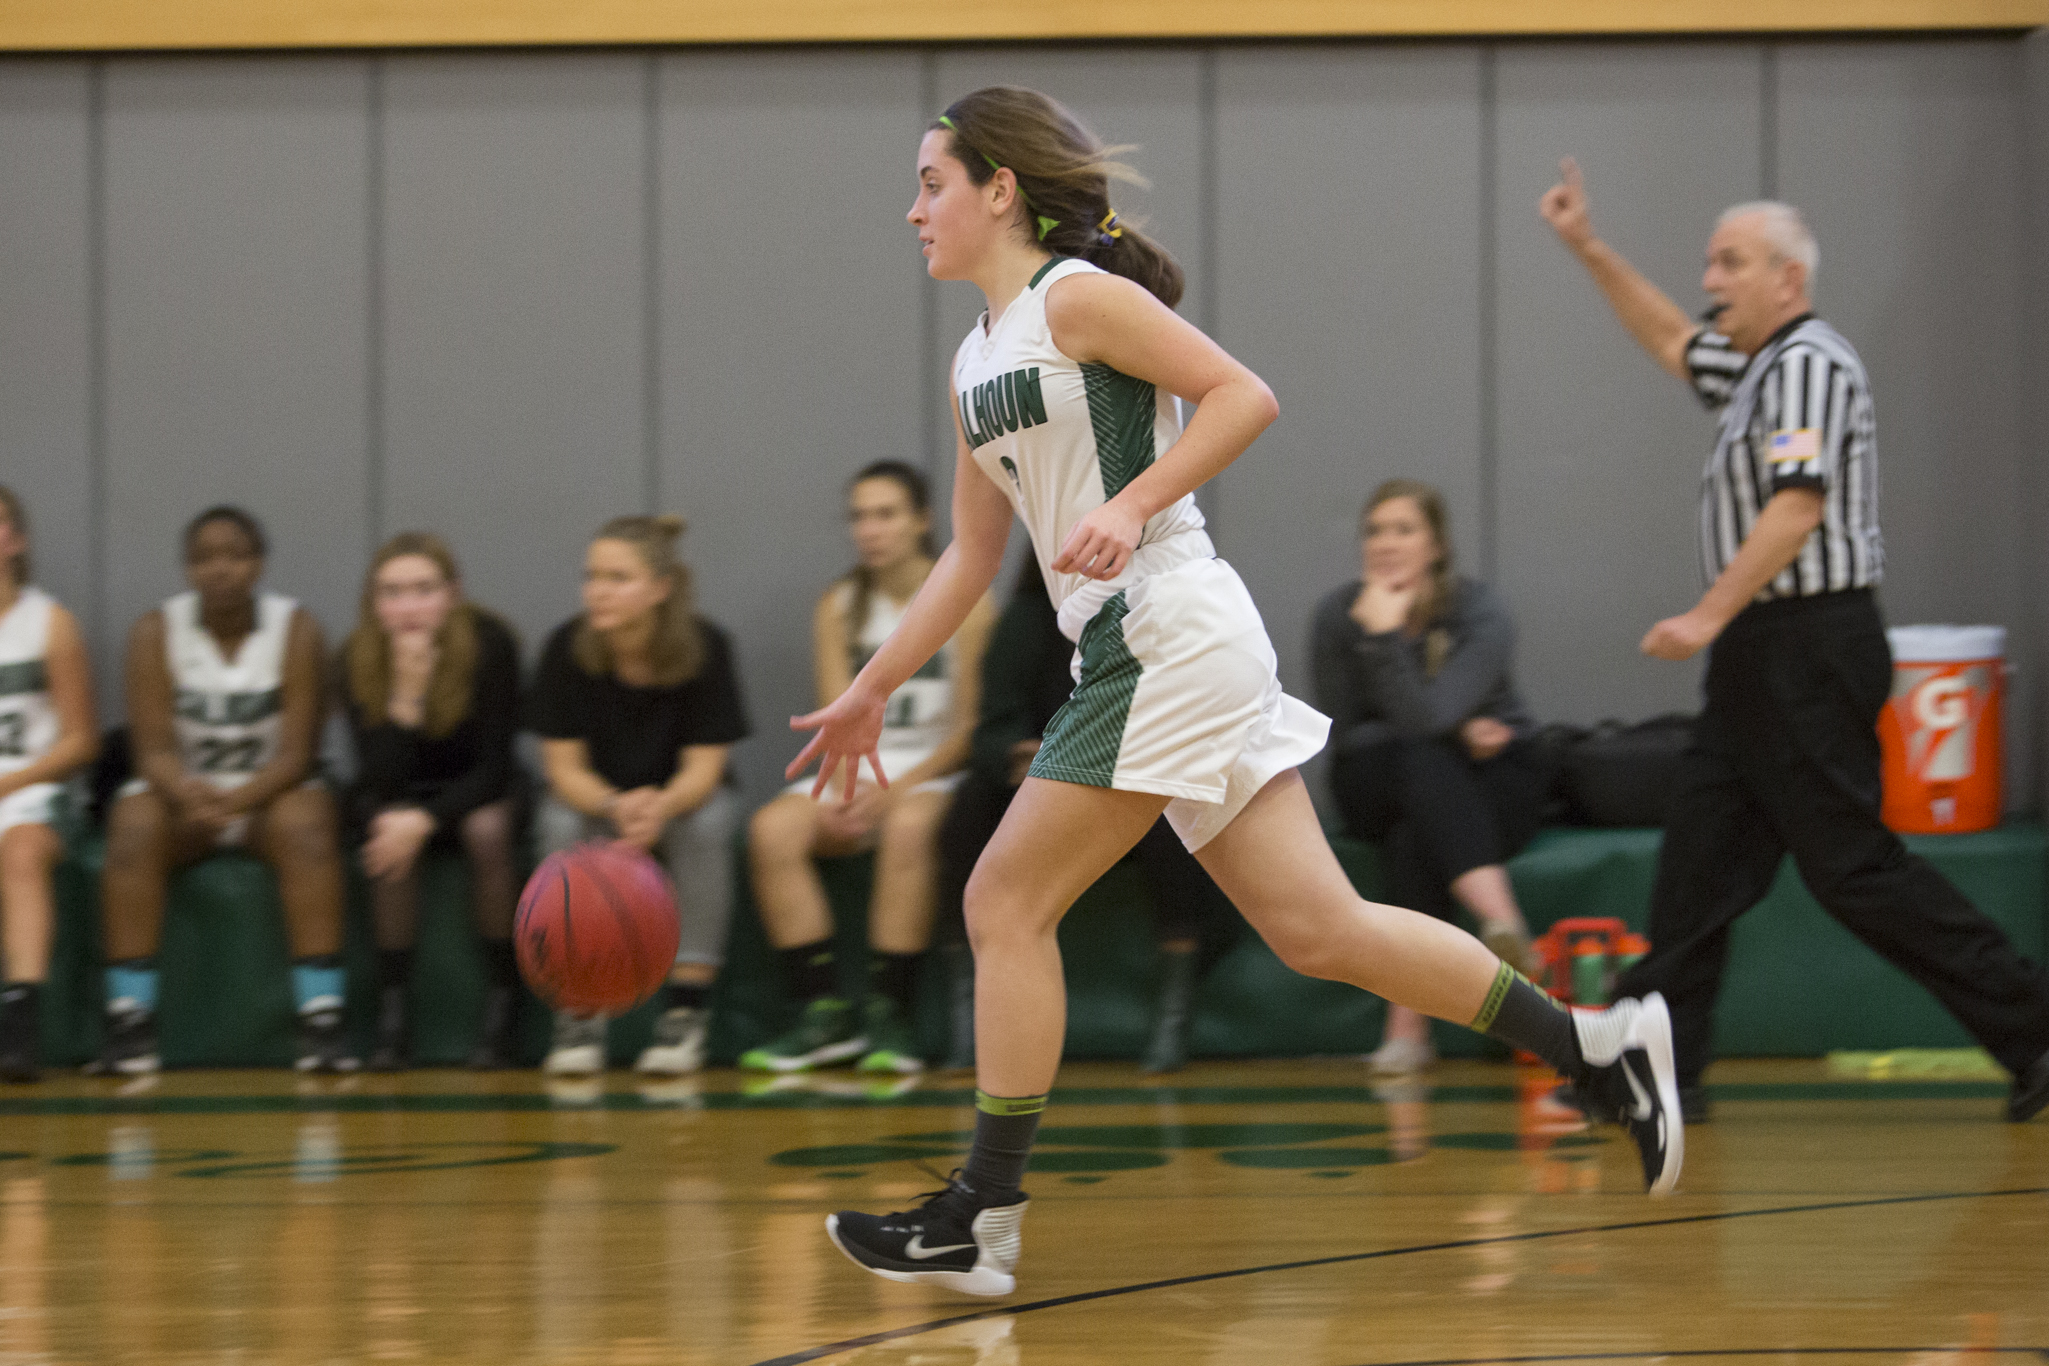 Cougar Training: Girls' Evening Basketball